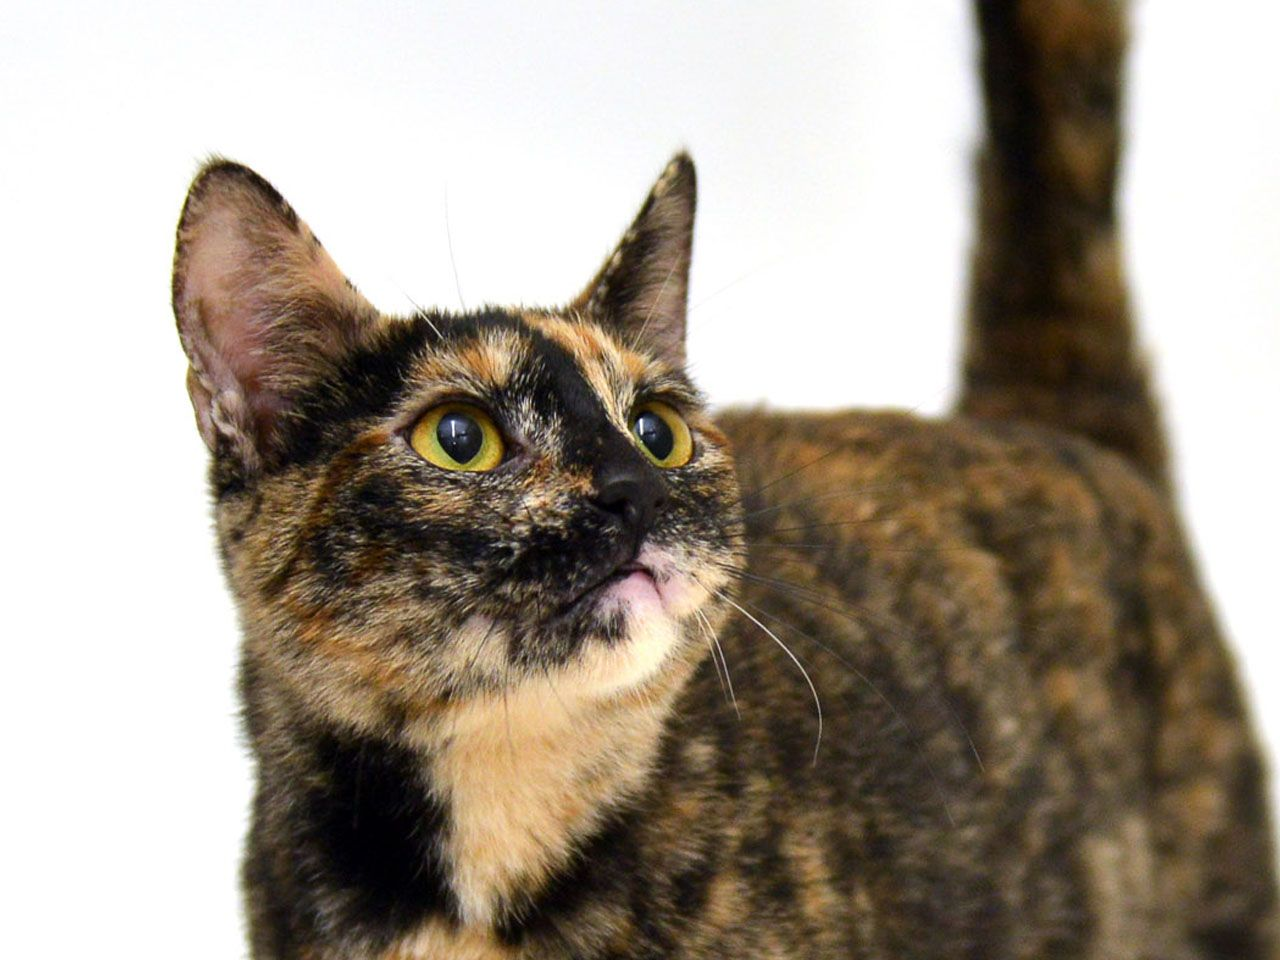 Sweet little Mabel will make her adopter very pleased